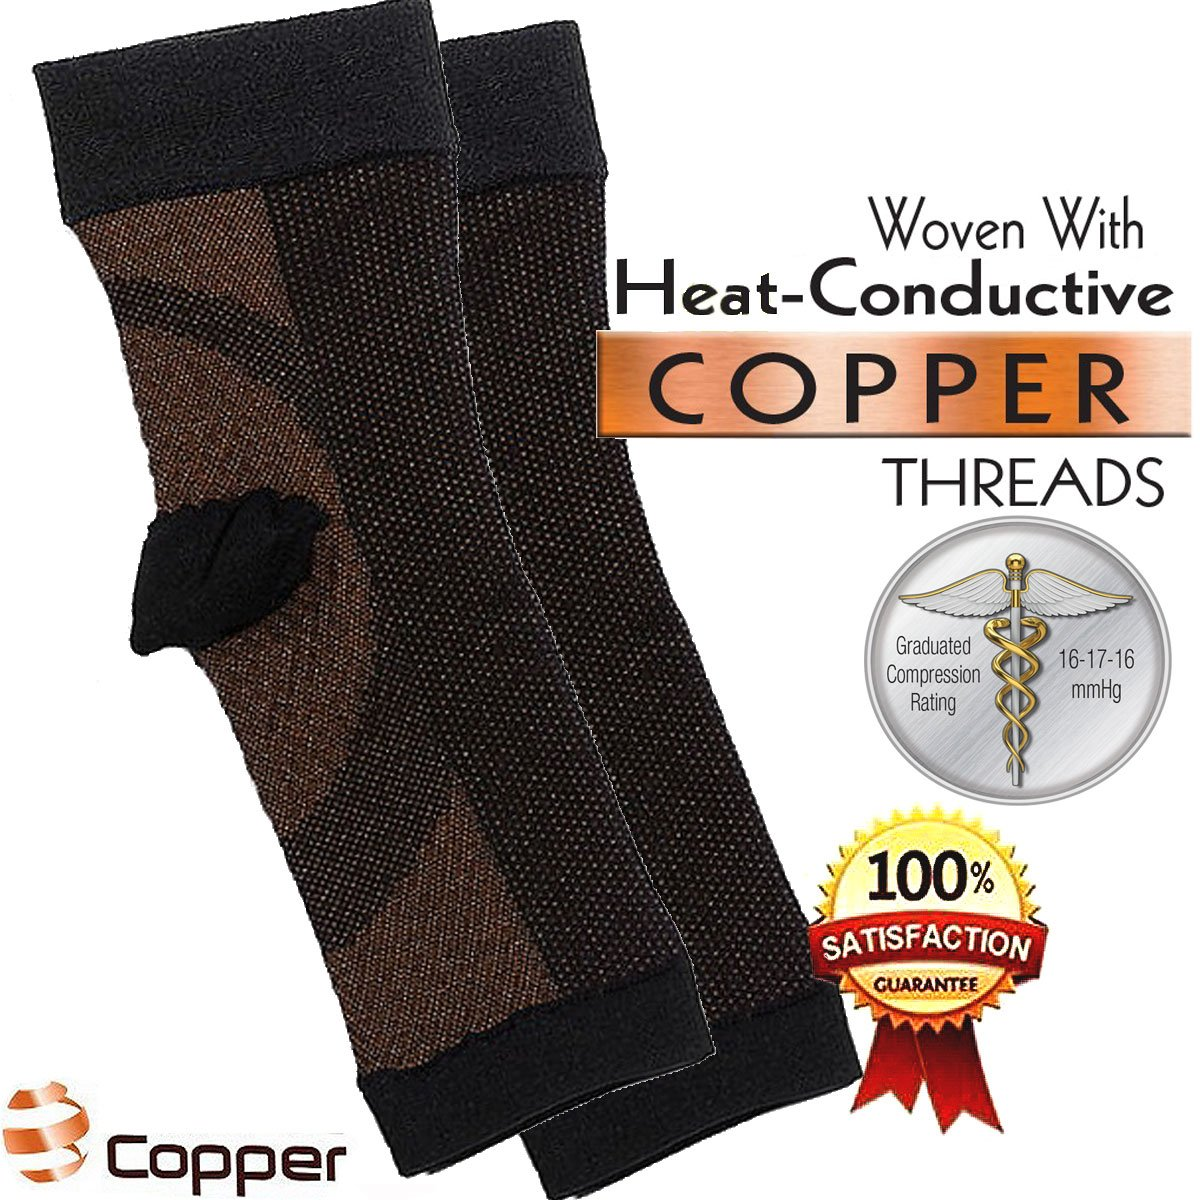 Compression Recovery Ankle Sleeve, Copper Anti-Fatigue Highest Copper Content. Infused Fit Ankle Support Brace / Wrap / Sock / Stabilizer For For Foot, Heel, Ankle, Arch, circulation + more Wear Anywhere